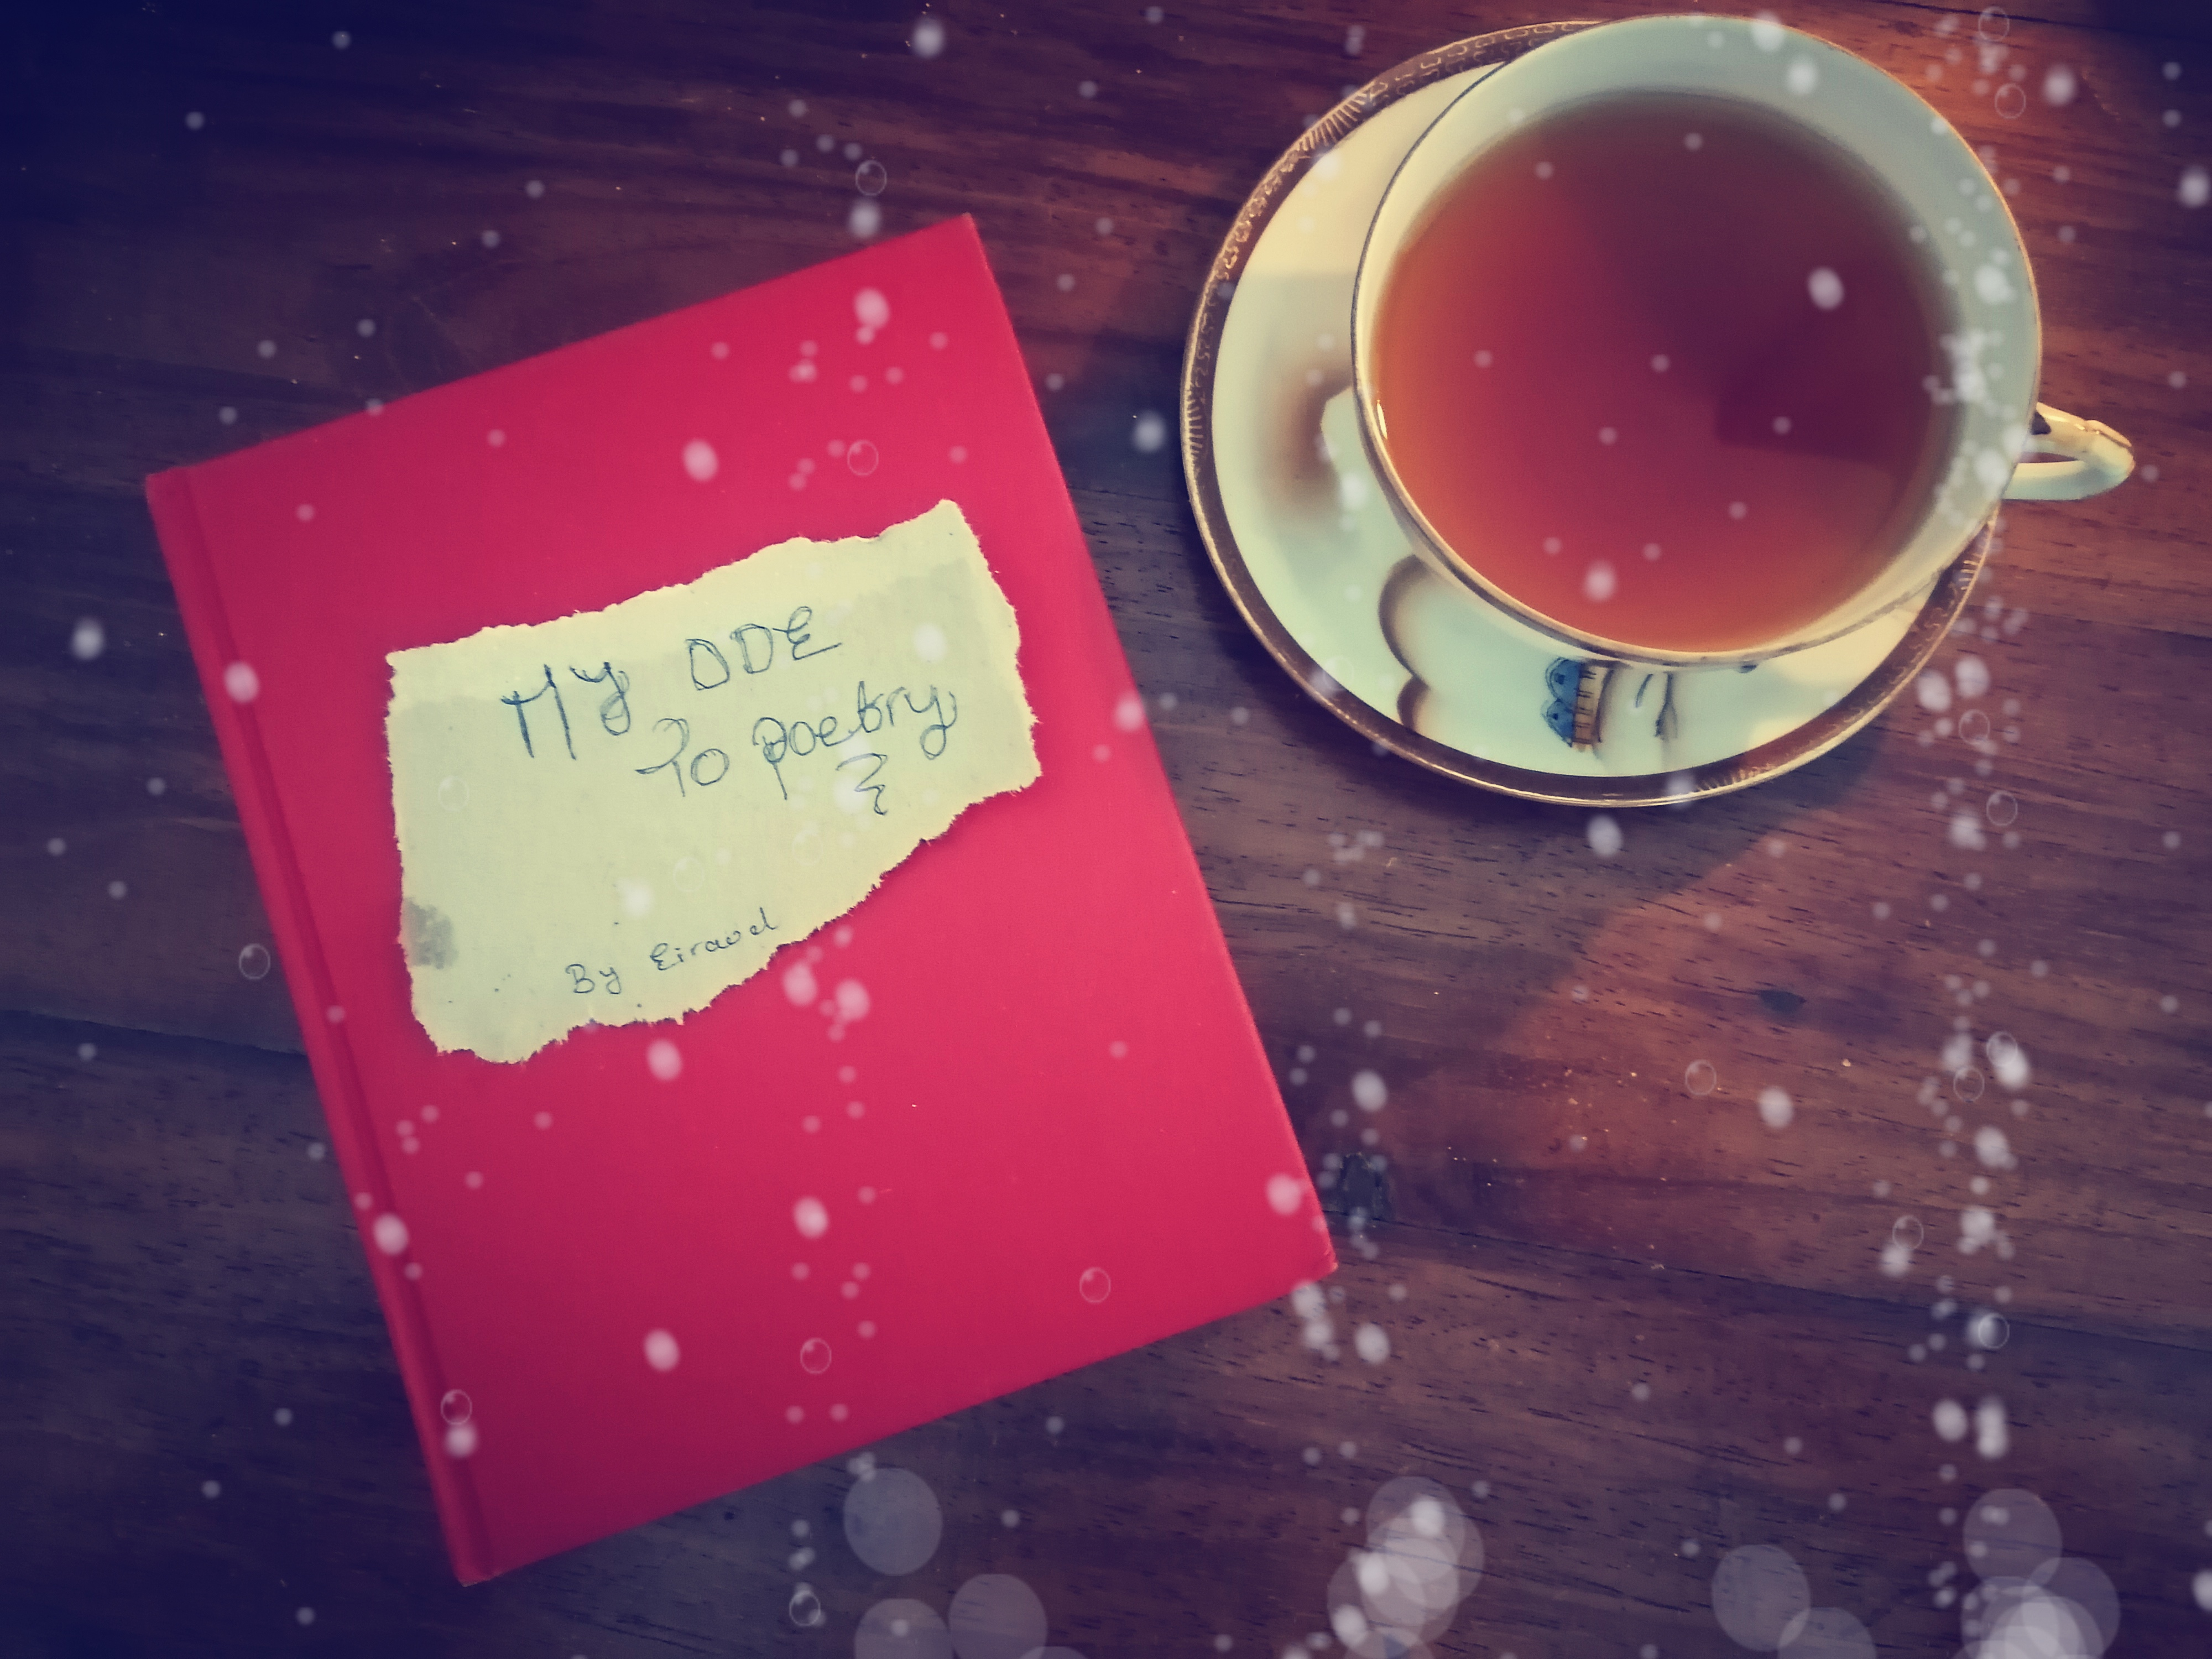 Red book and cup of tea and saucer